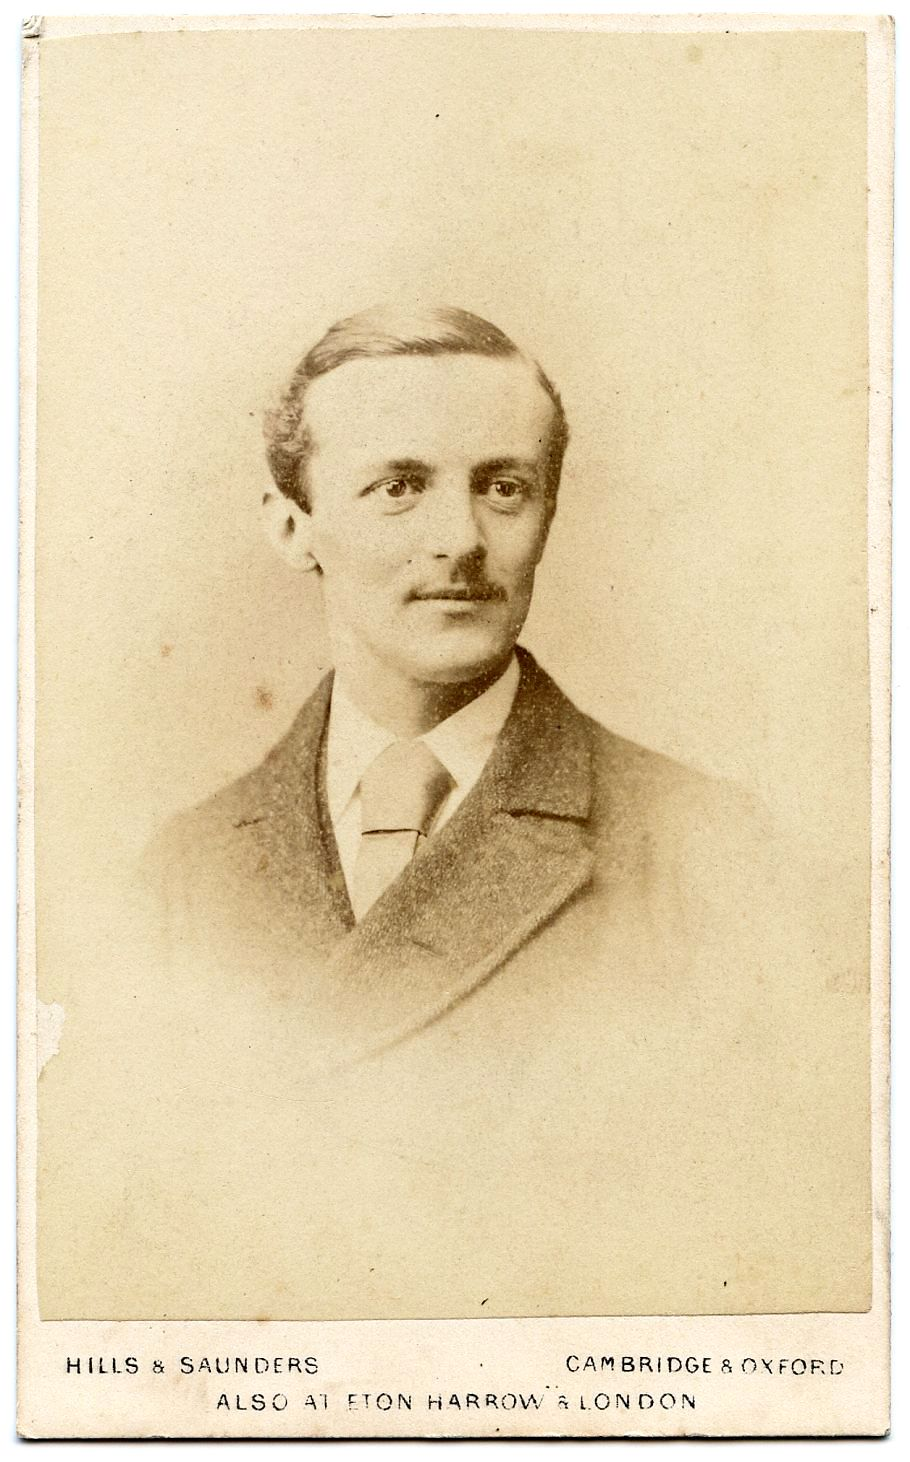 Portrait of an unknown gentleman on a carte de visite by Hills & Saunders, Cambridge & Oxford. According to Wikipedia, the Cambridge studio was bankrupt by 1892 and all records destroyed.